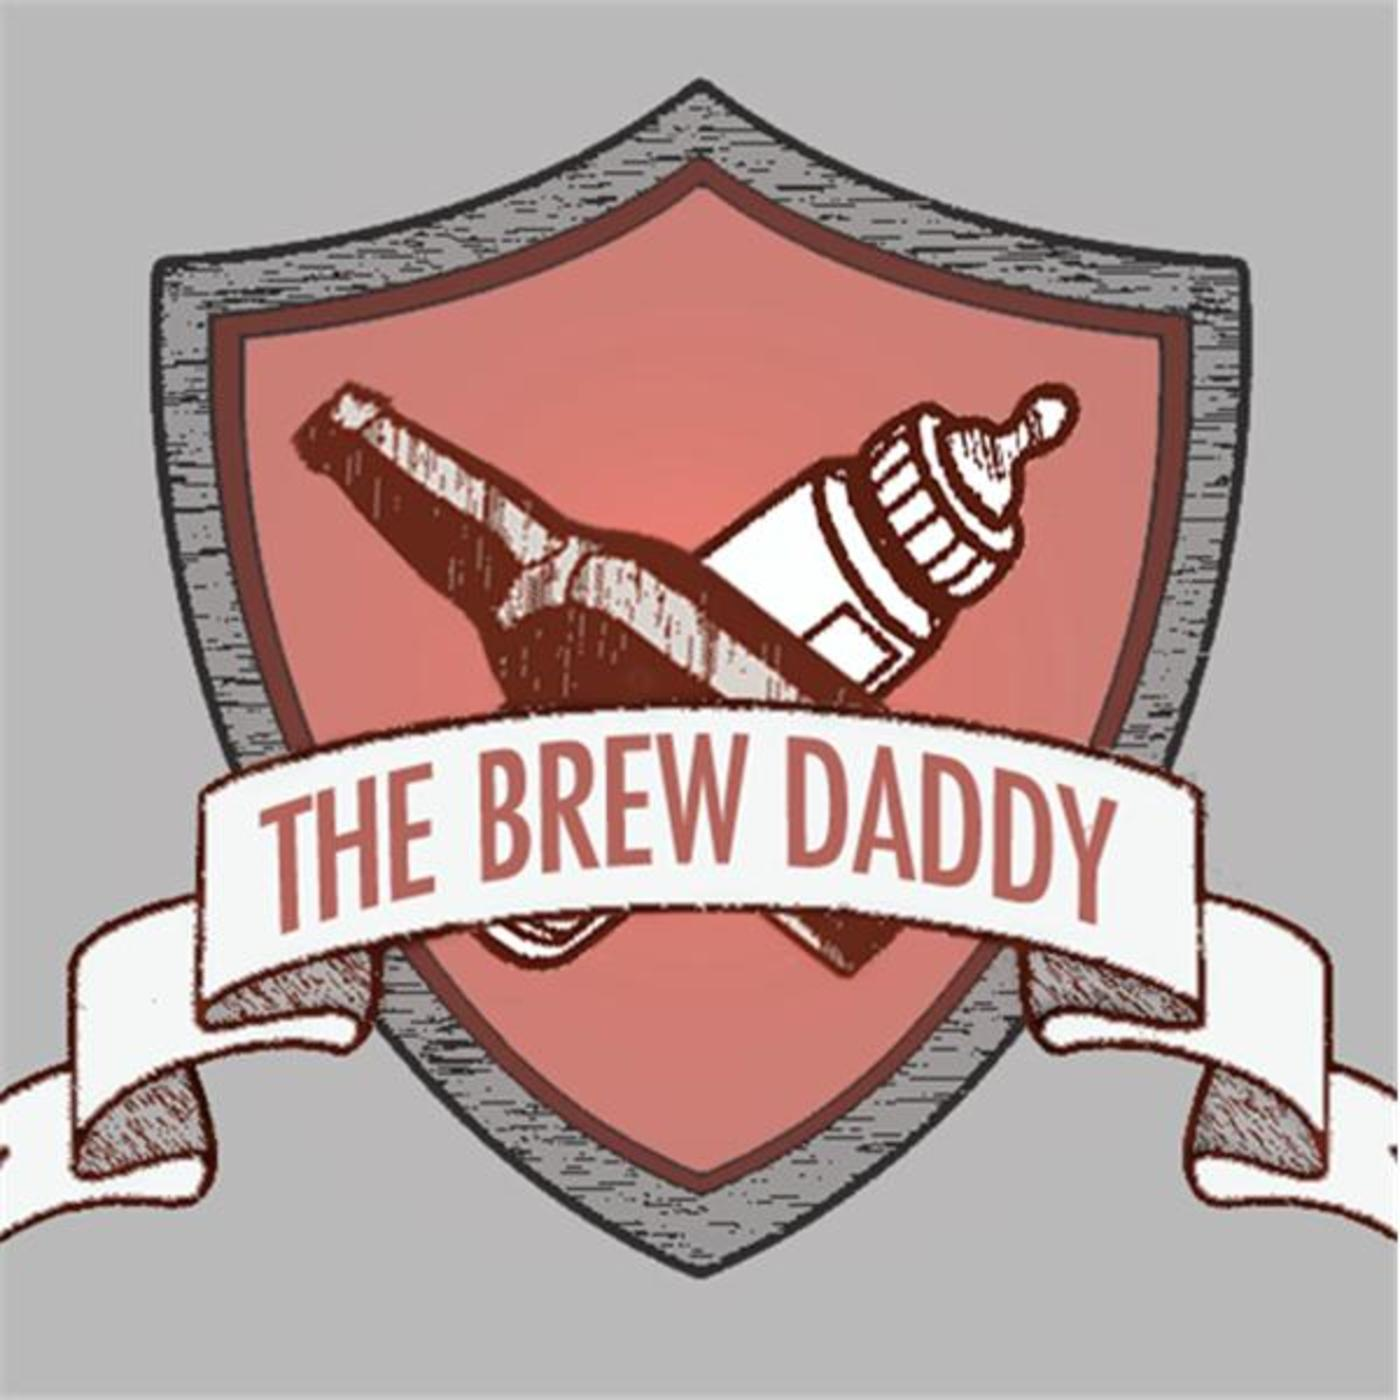 The Brew Daddy